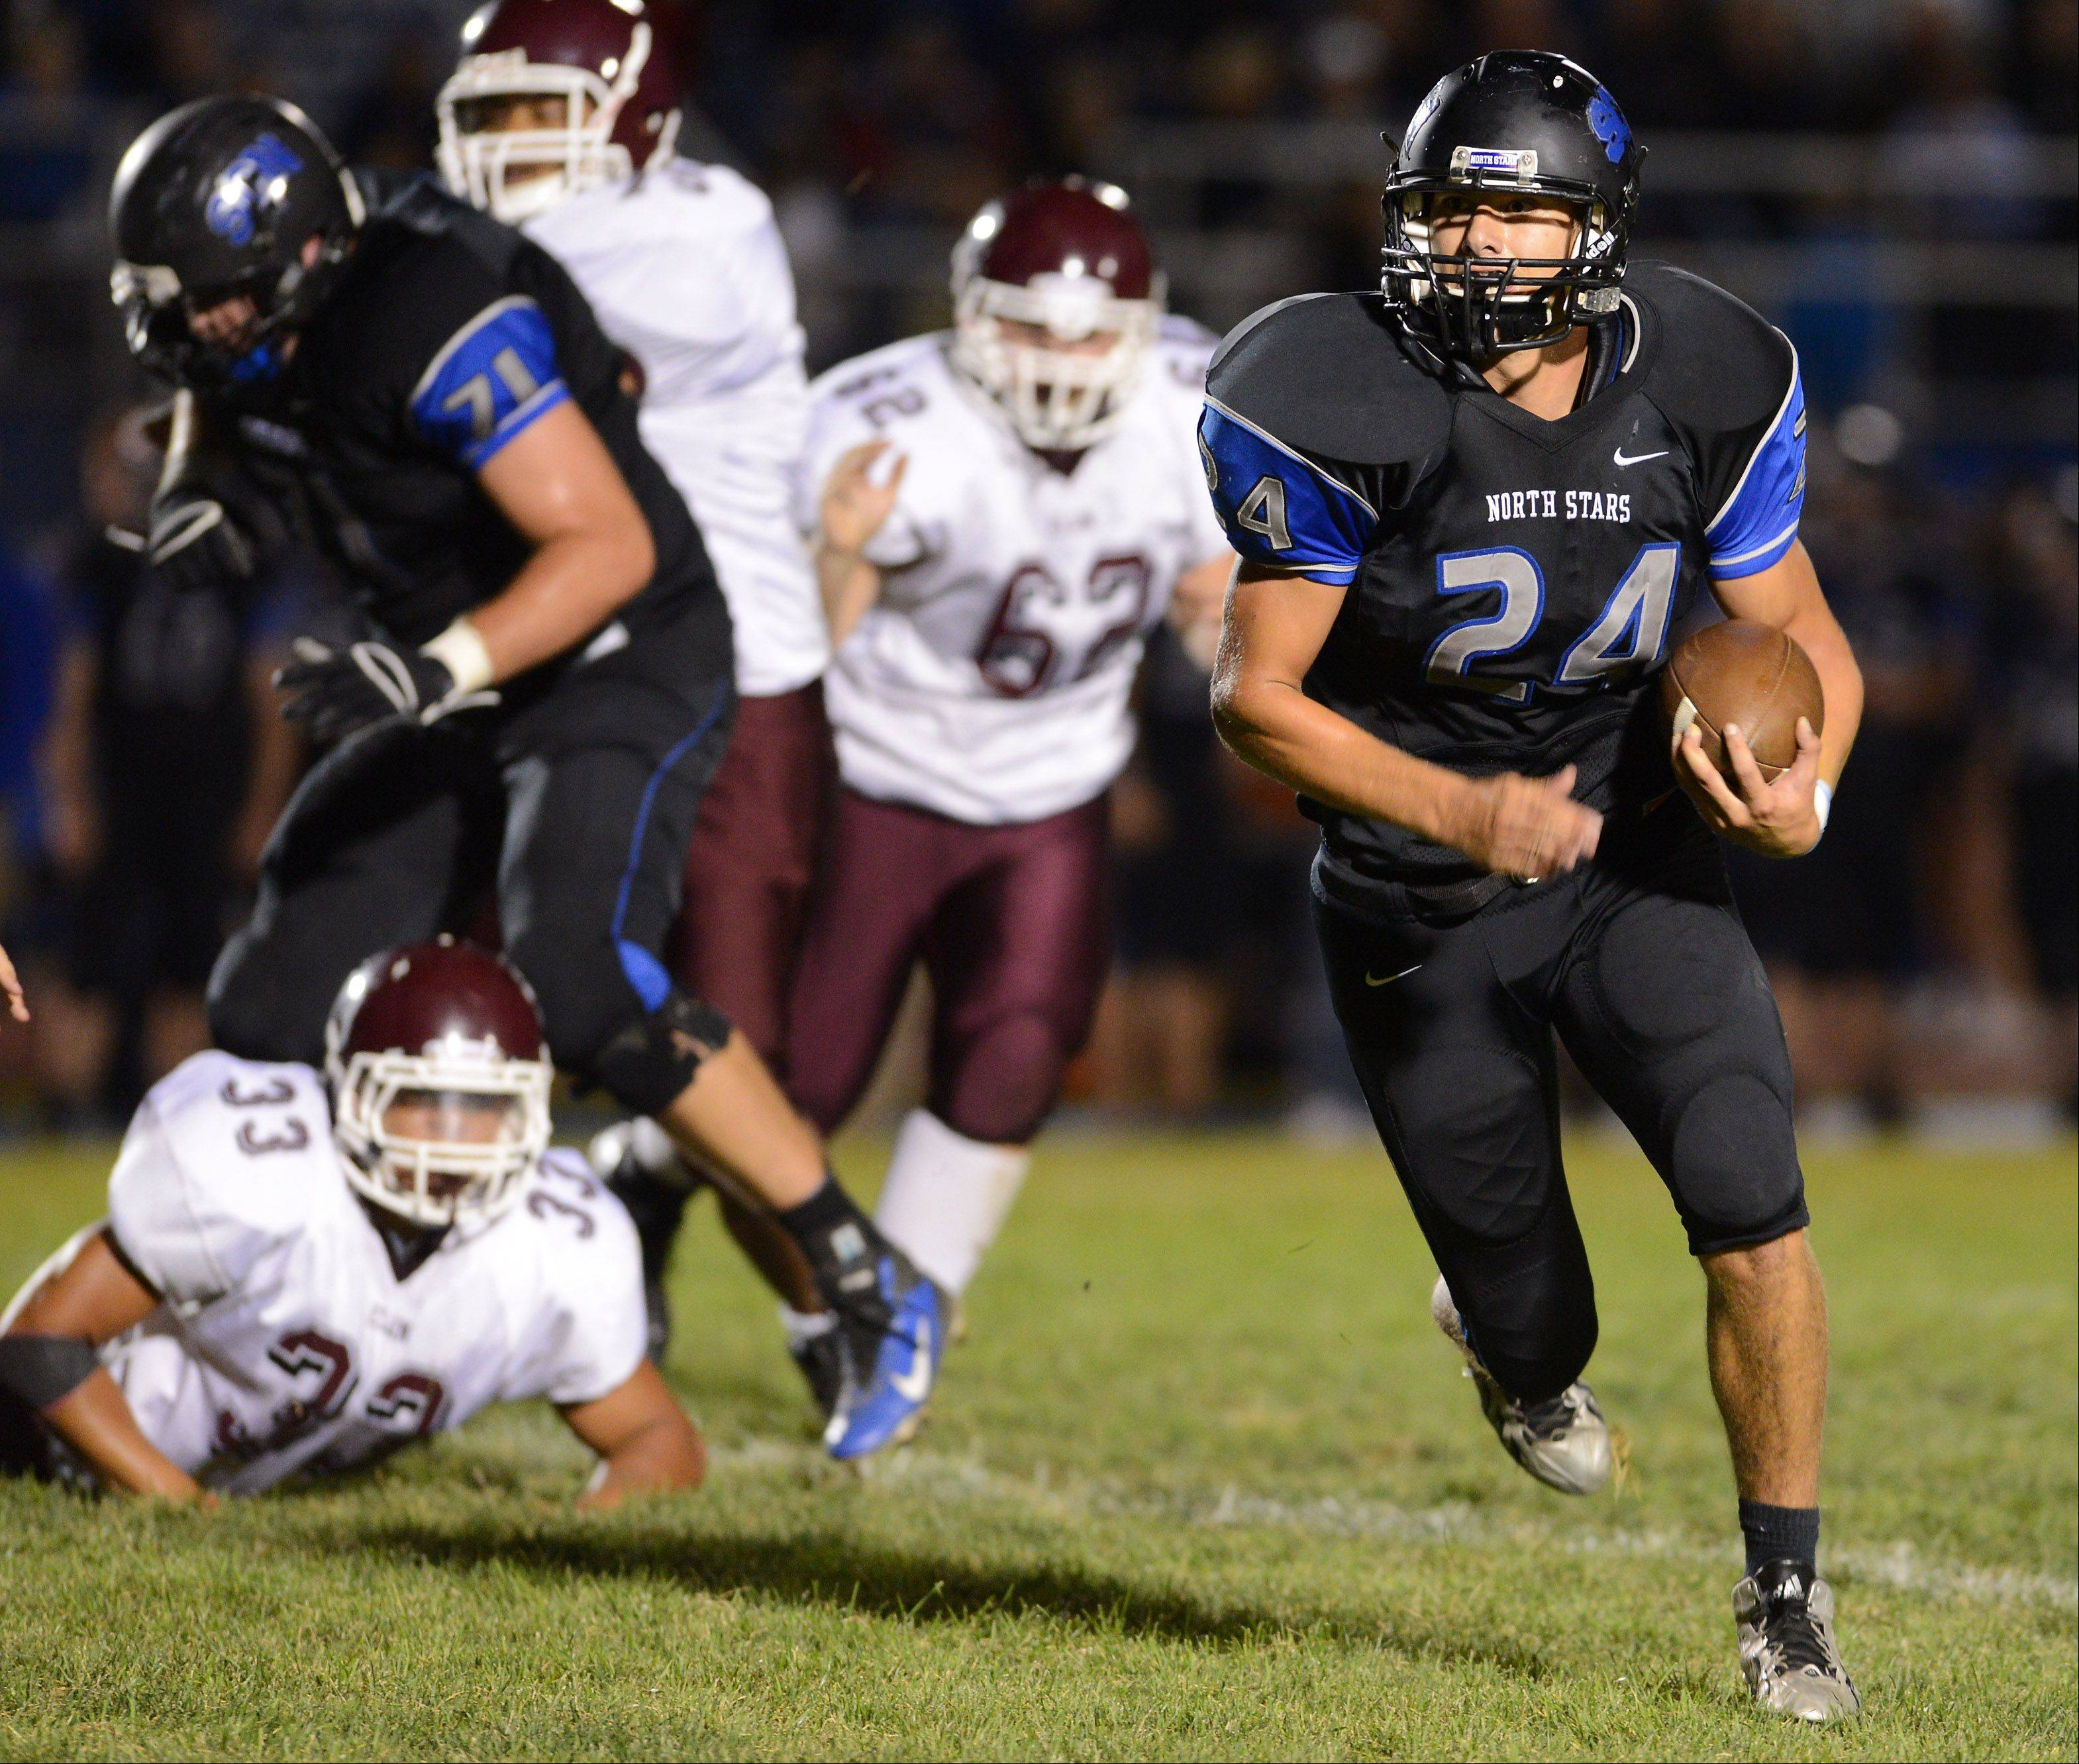 St. Charles North�s Evan Kurtz (24) leaves several broken tackles in his wake en route to a big gain against Elgin during Friday�s game in St. Charles.